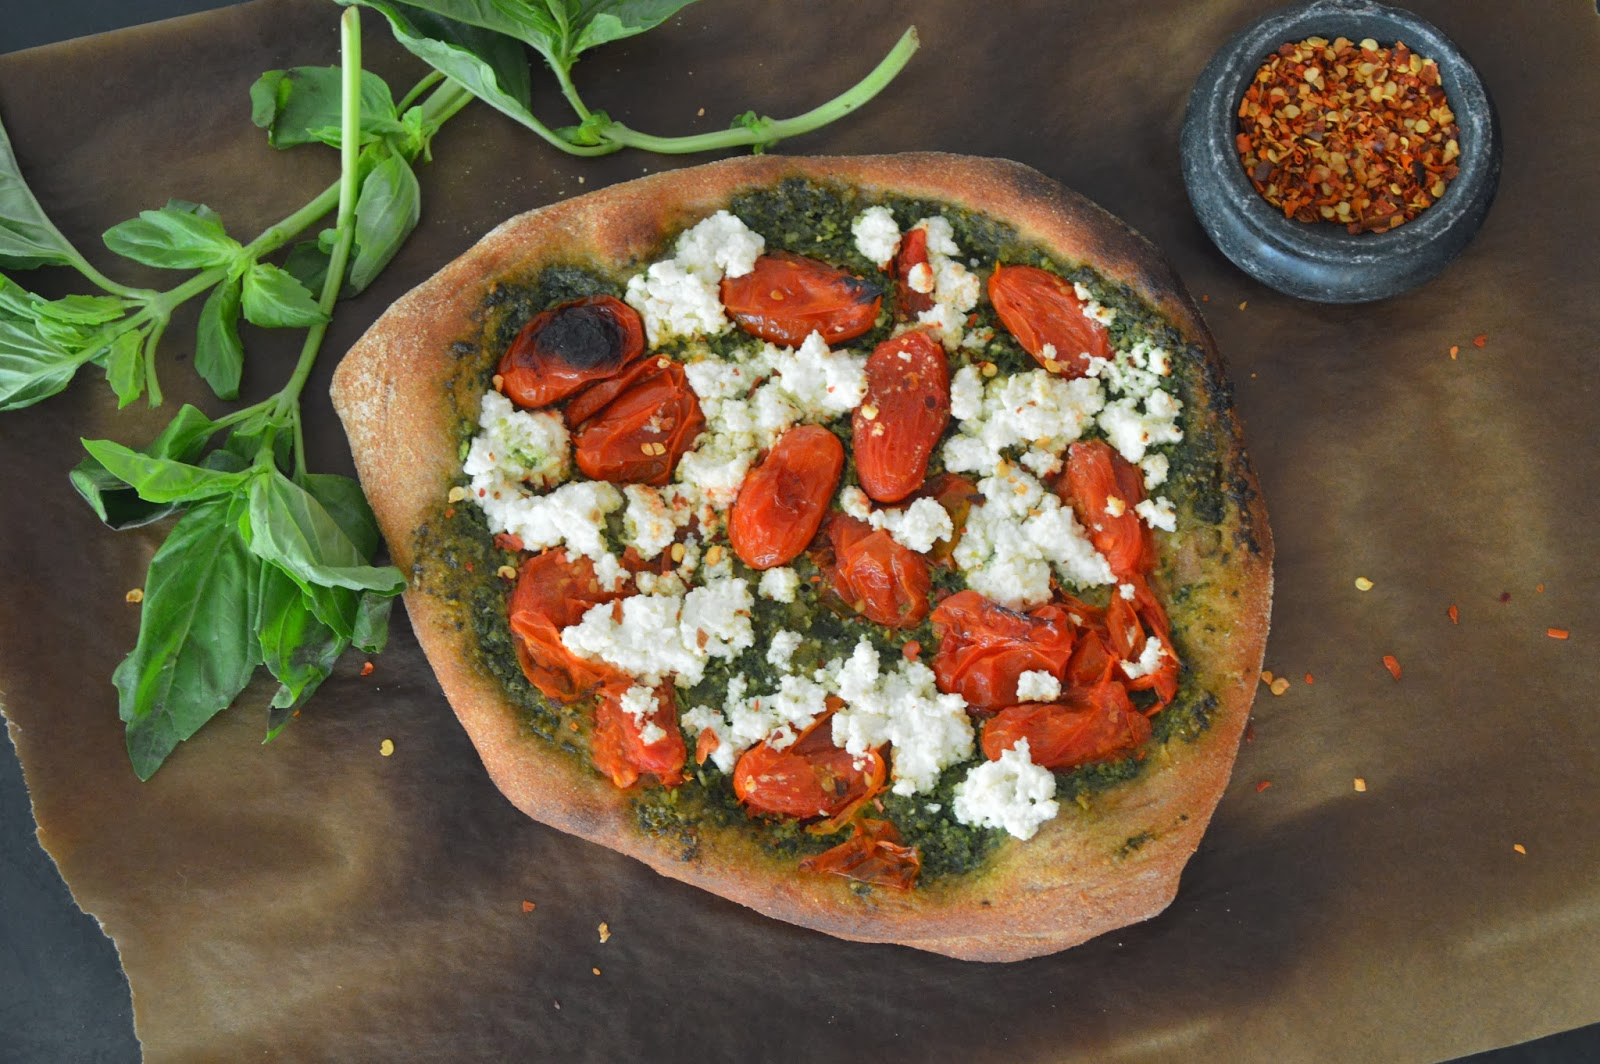 ... Recipe Redux} Spinach and Basil Pesto, Roasted Tomato & Ricotta Pizza